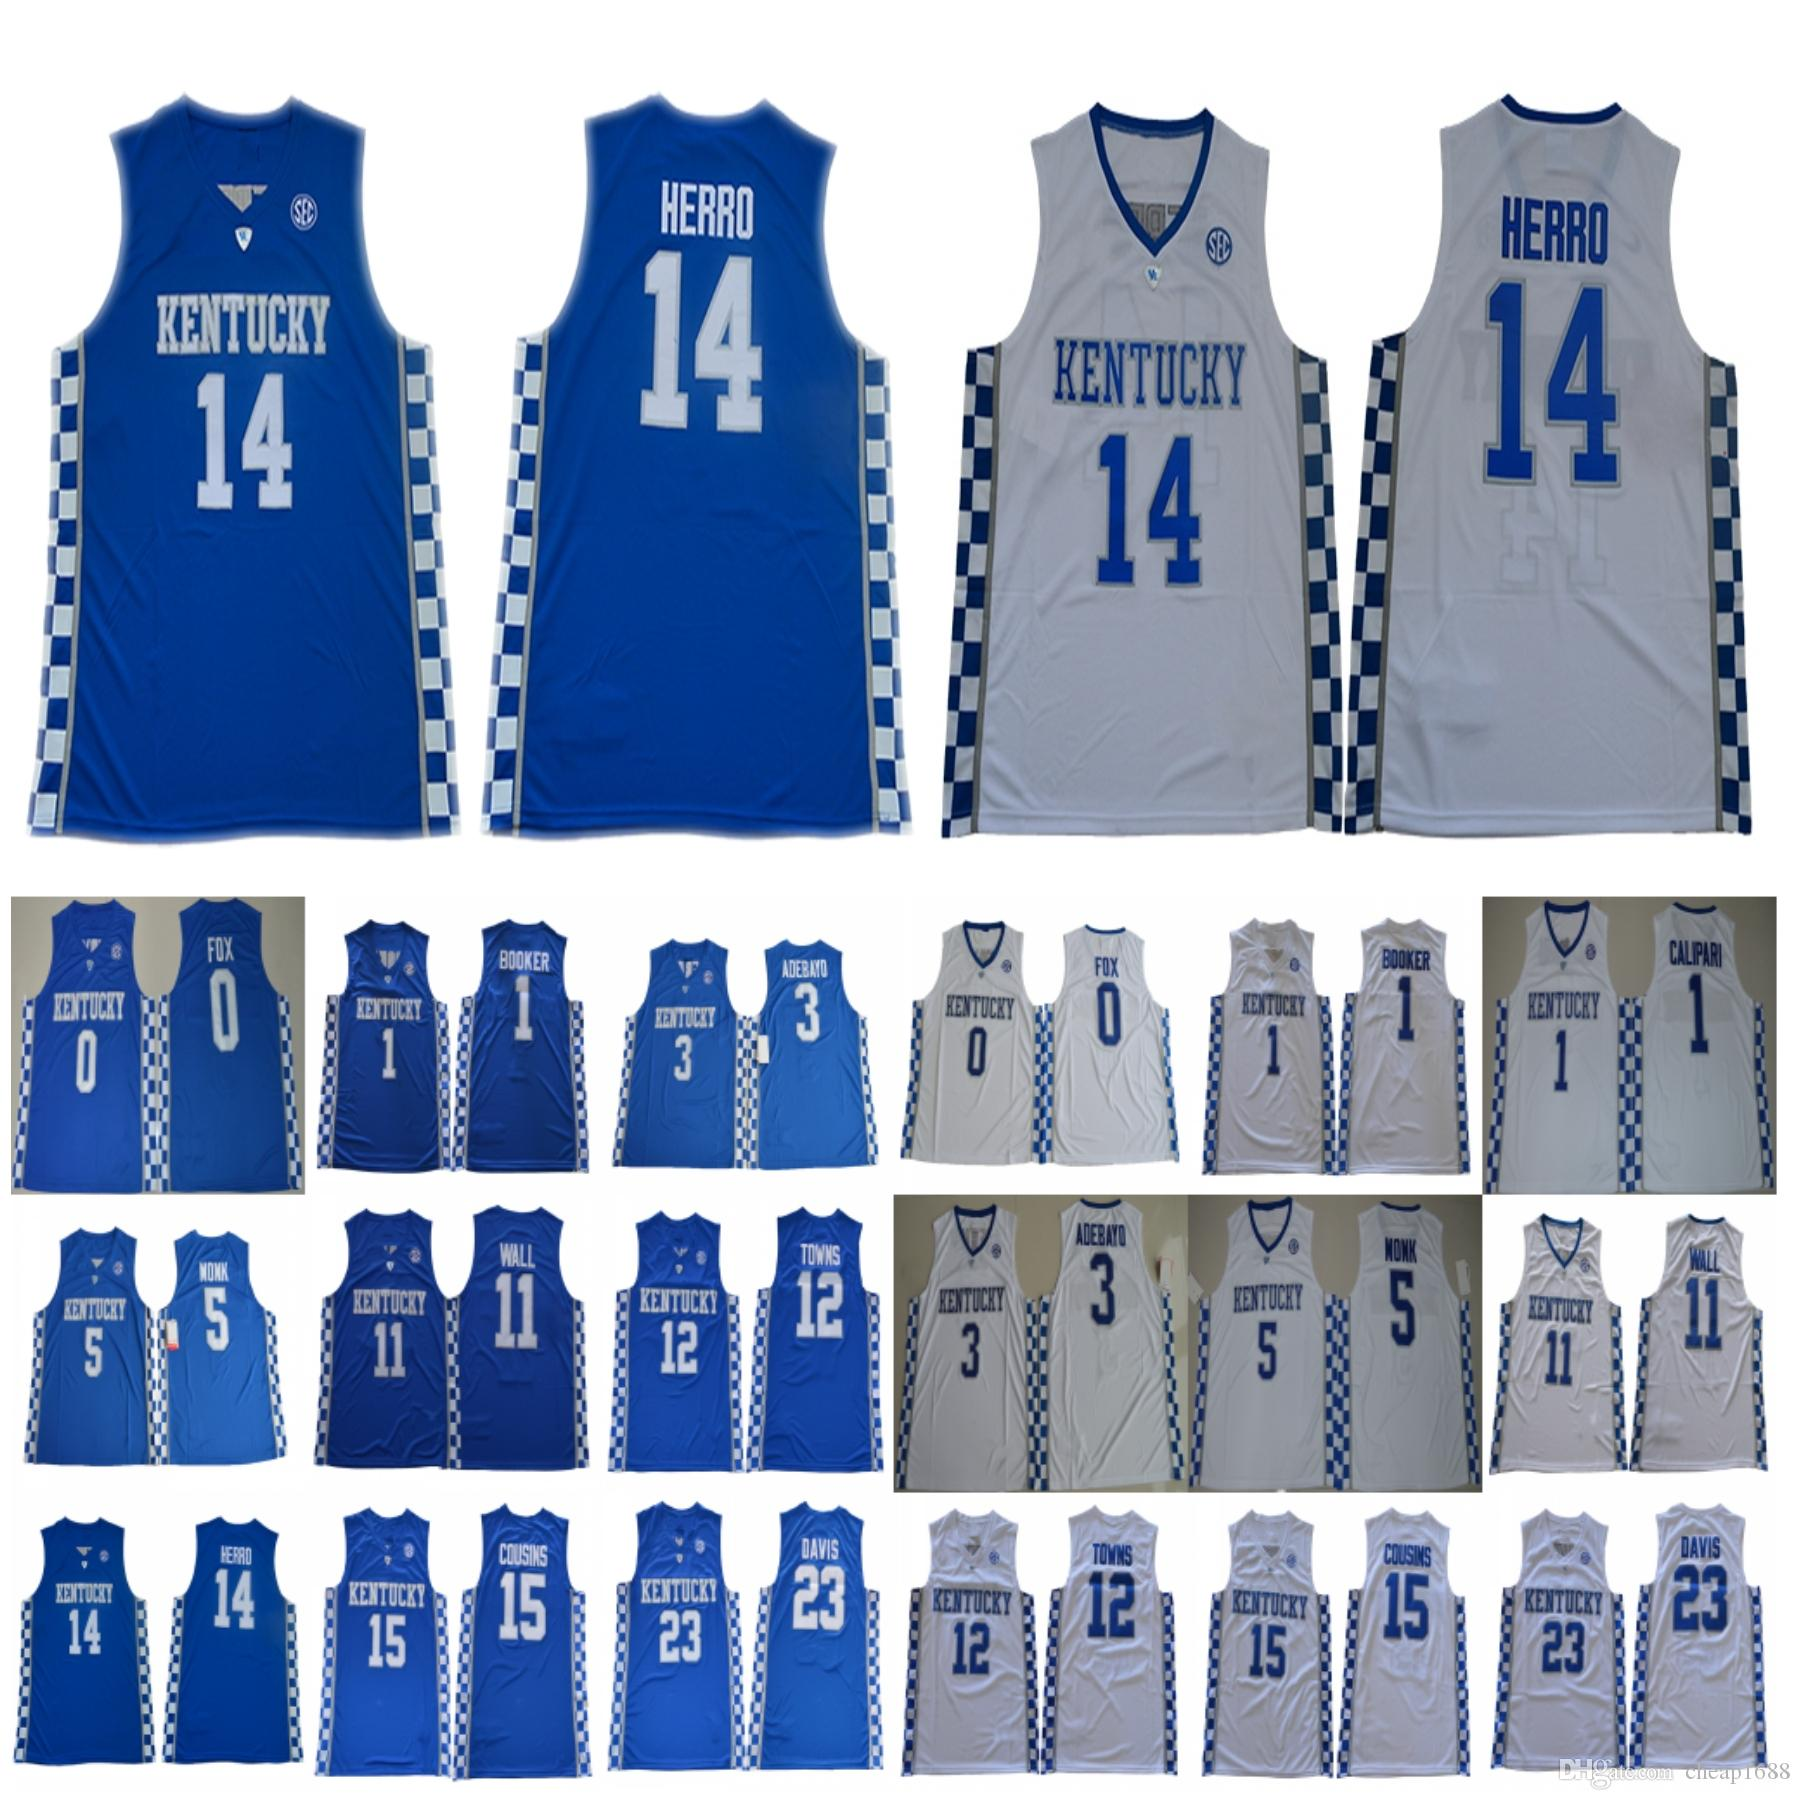 low priced 4345c ecdc8 2019 NCAA Kentucky Wildcats Tyler Herro Jersey  14 Booker Wall Towns  Cousins Davis Devin John Karl Anthony DeMarcus Anthony Fox Monk Jerseys  From Cheap1688, ...